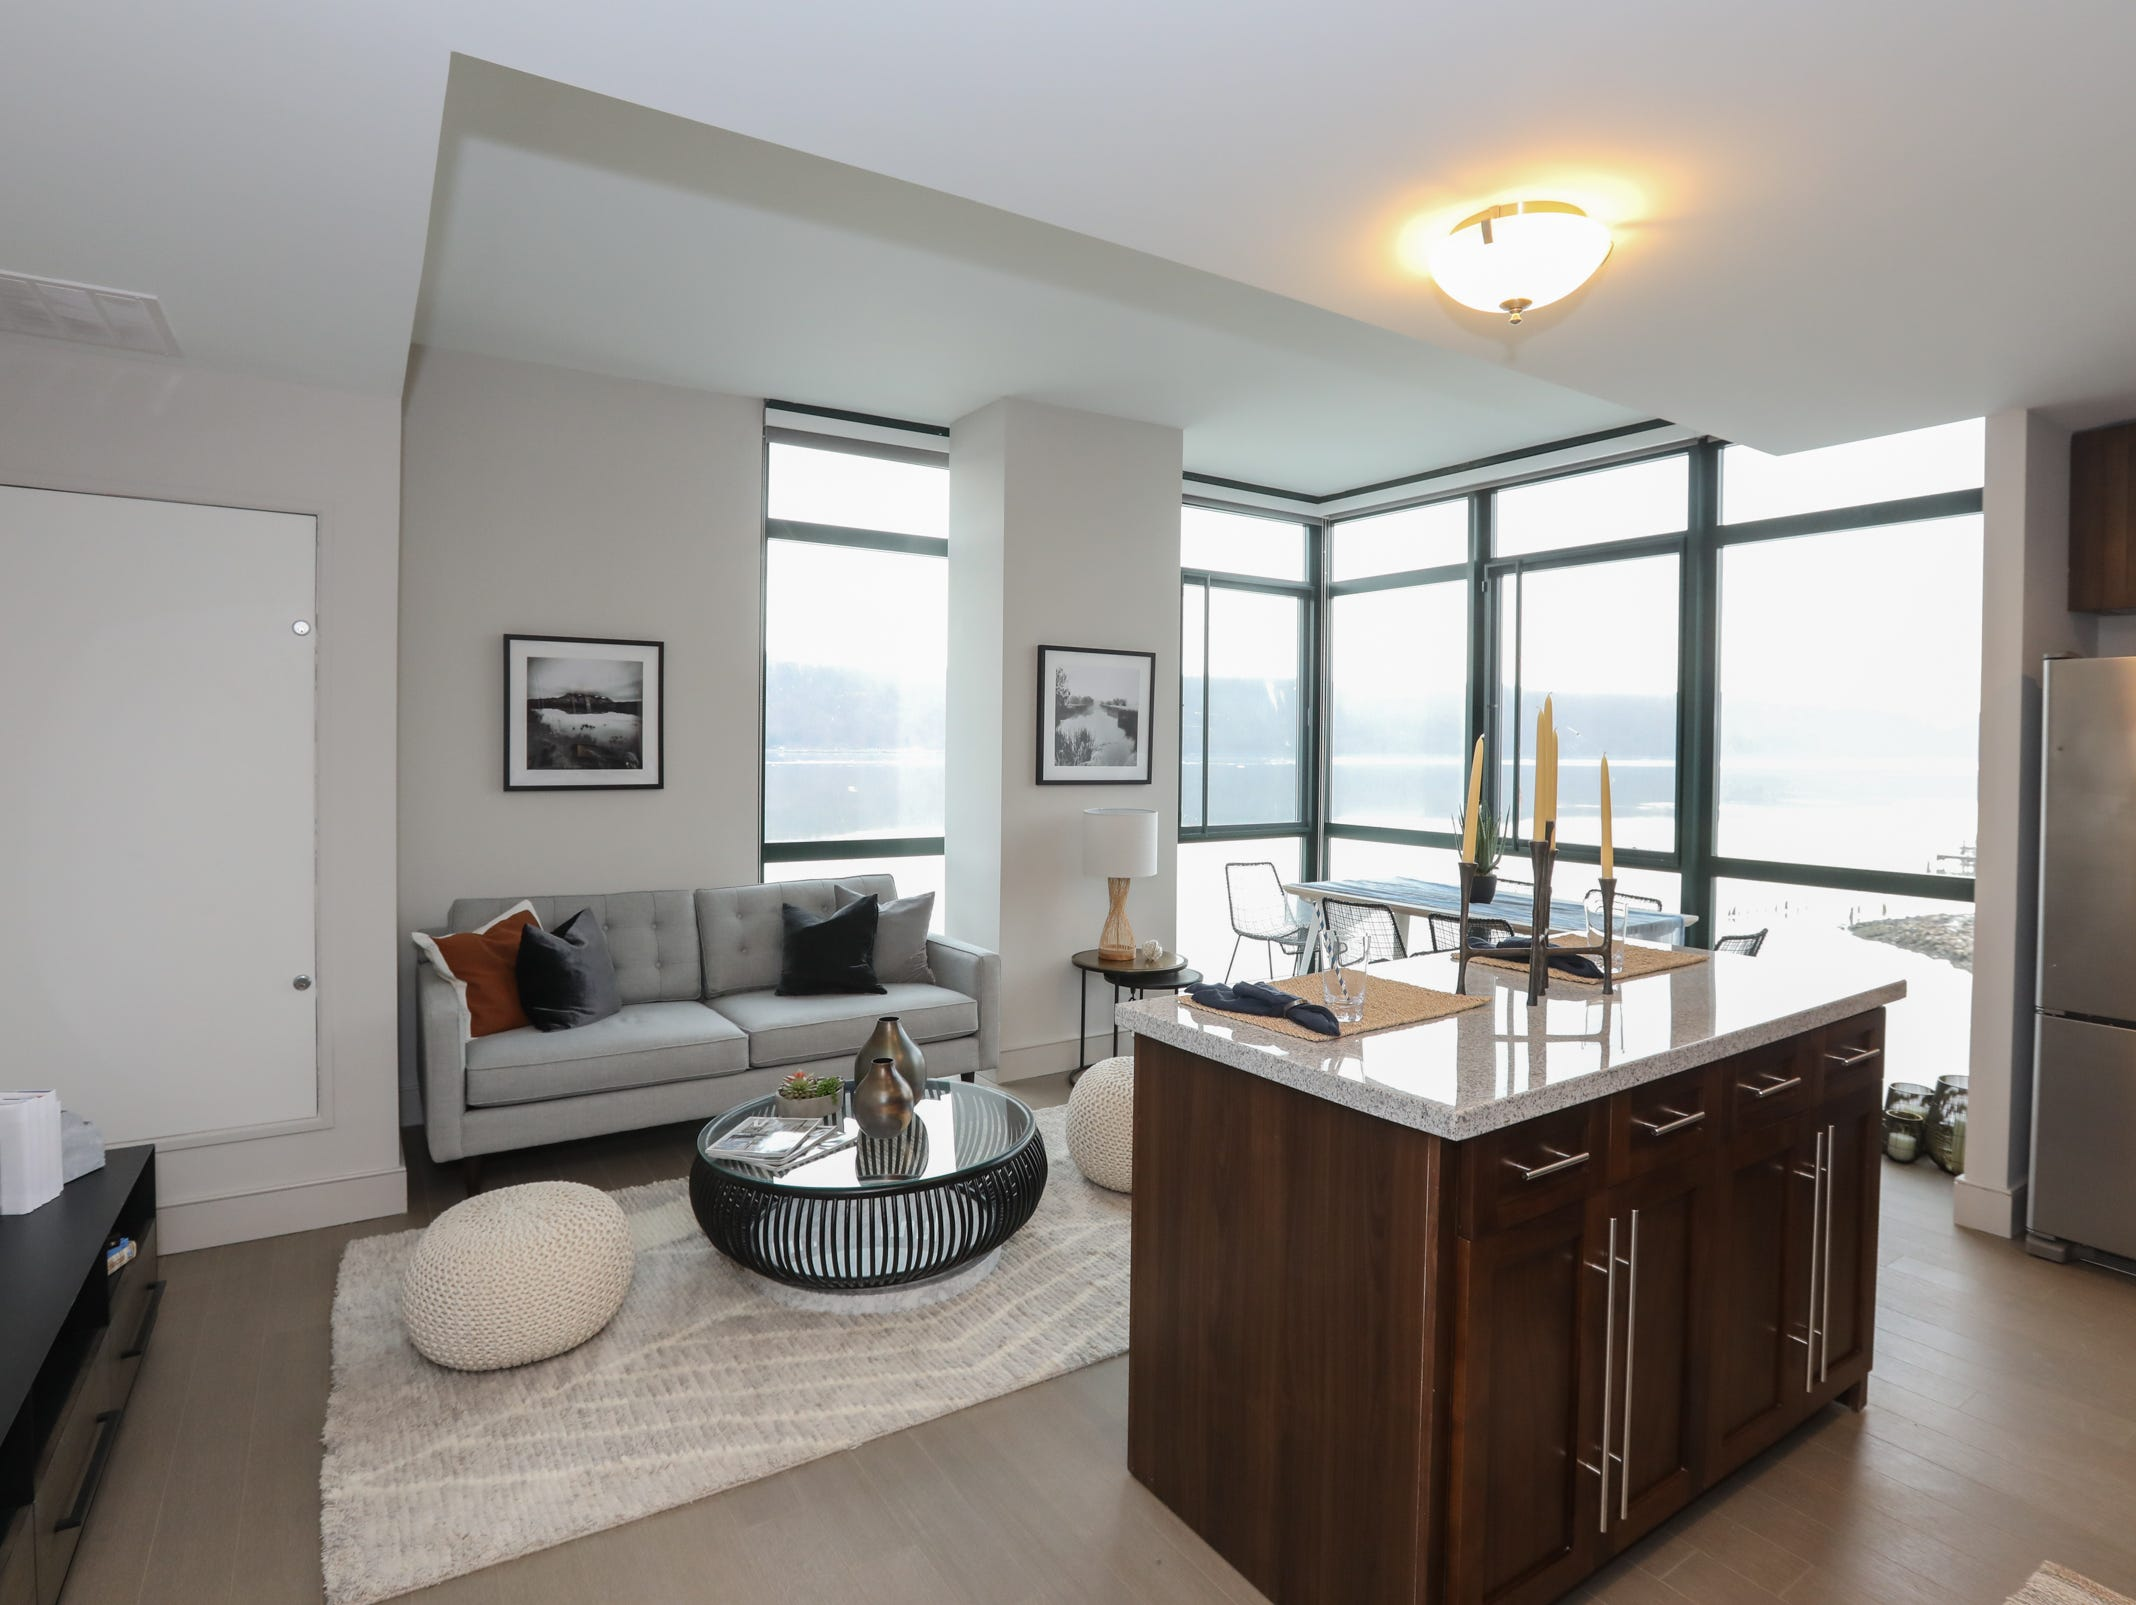 The kitchen and living room of a two bedroom apartment at The River Club at Hudson Park in Yonkers on Friday, February 15, 2019.